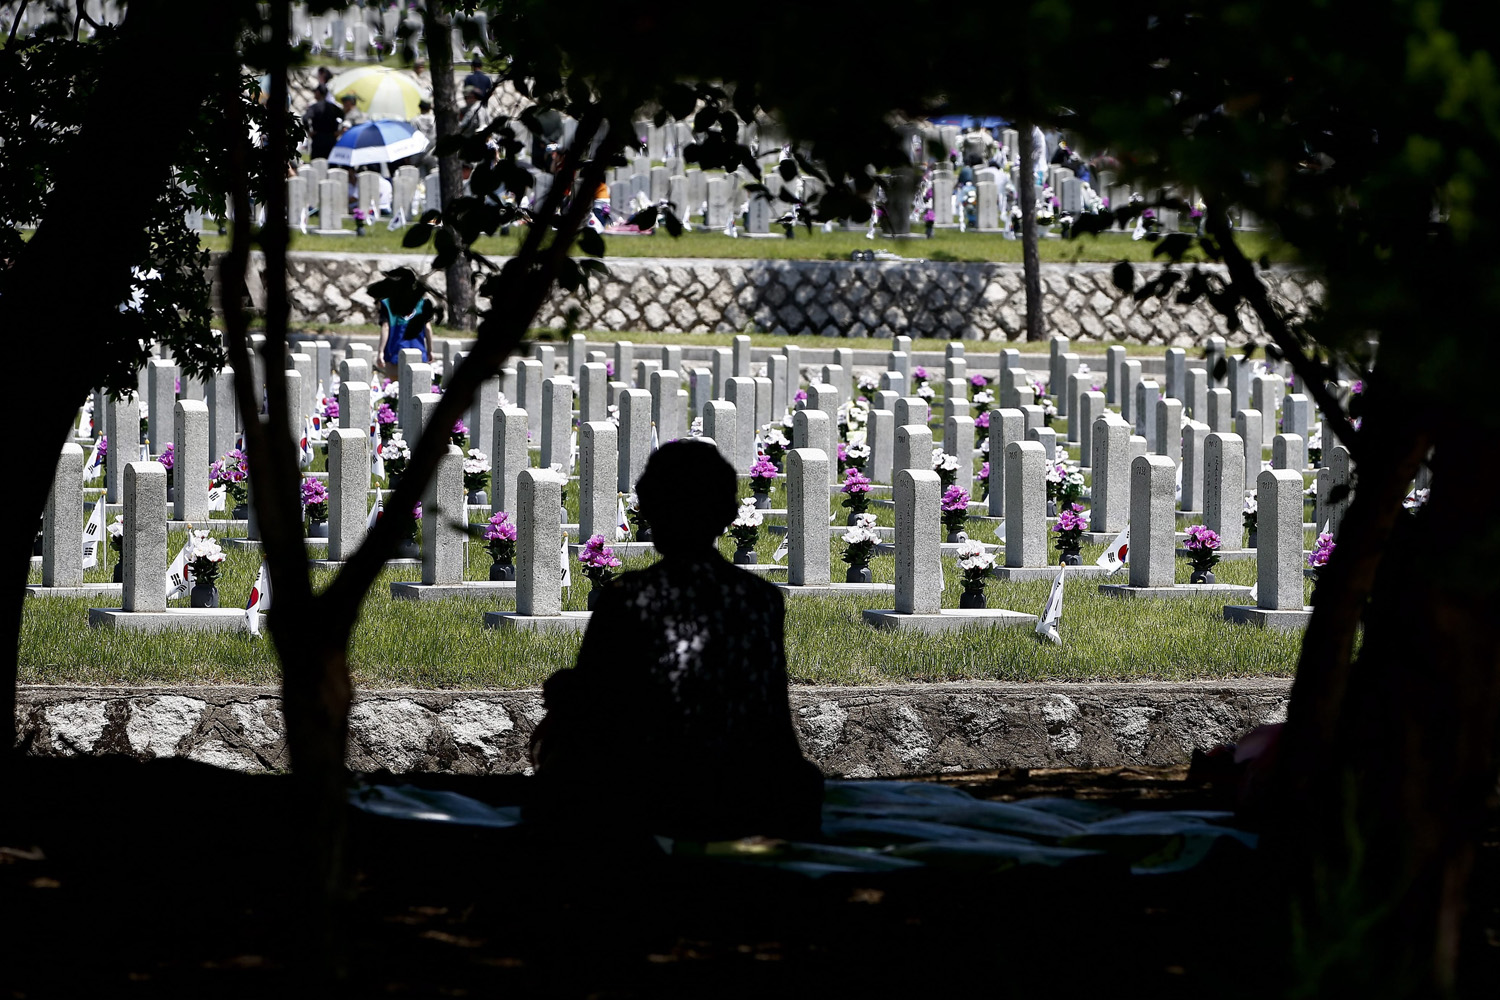 June 6, 2014. A South Korean relative of the war dead mourns at the Seoul National Cemetery in Seoul, South Korea 06 June 2014. South Korea marks the 59th anniversary of the Memorial Day for those killed in the 1950-53 Korean War.